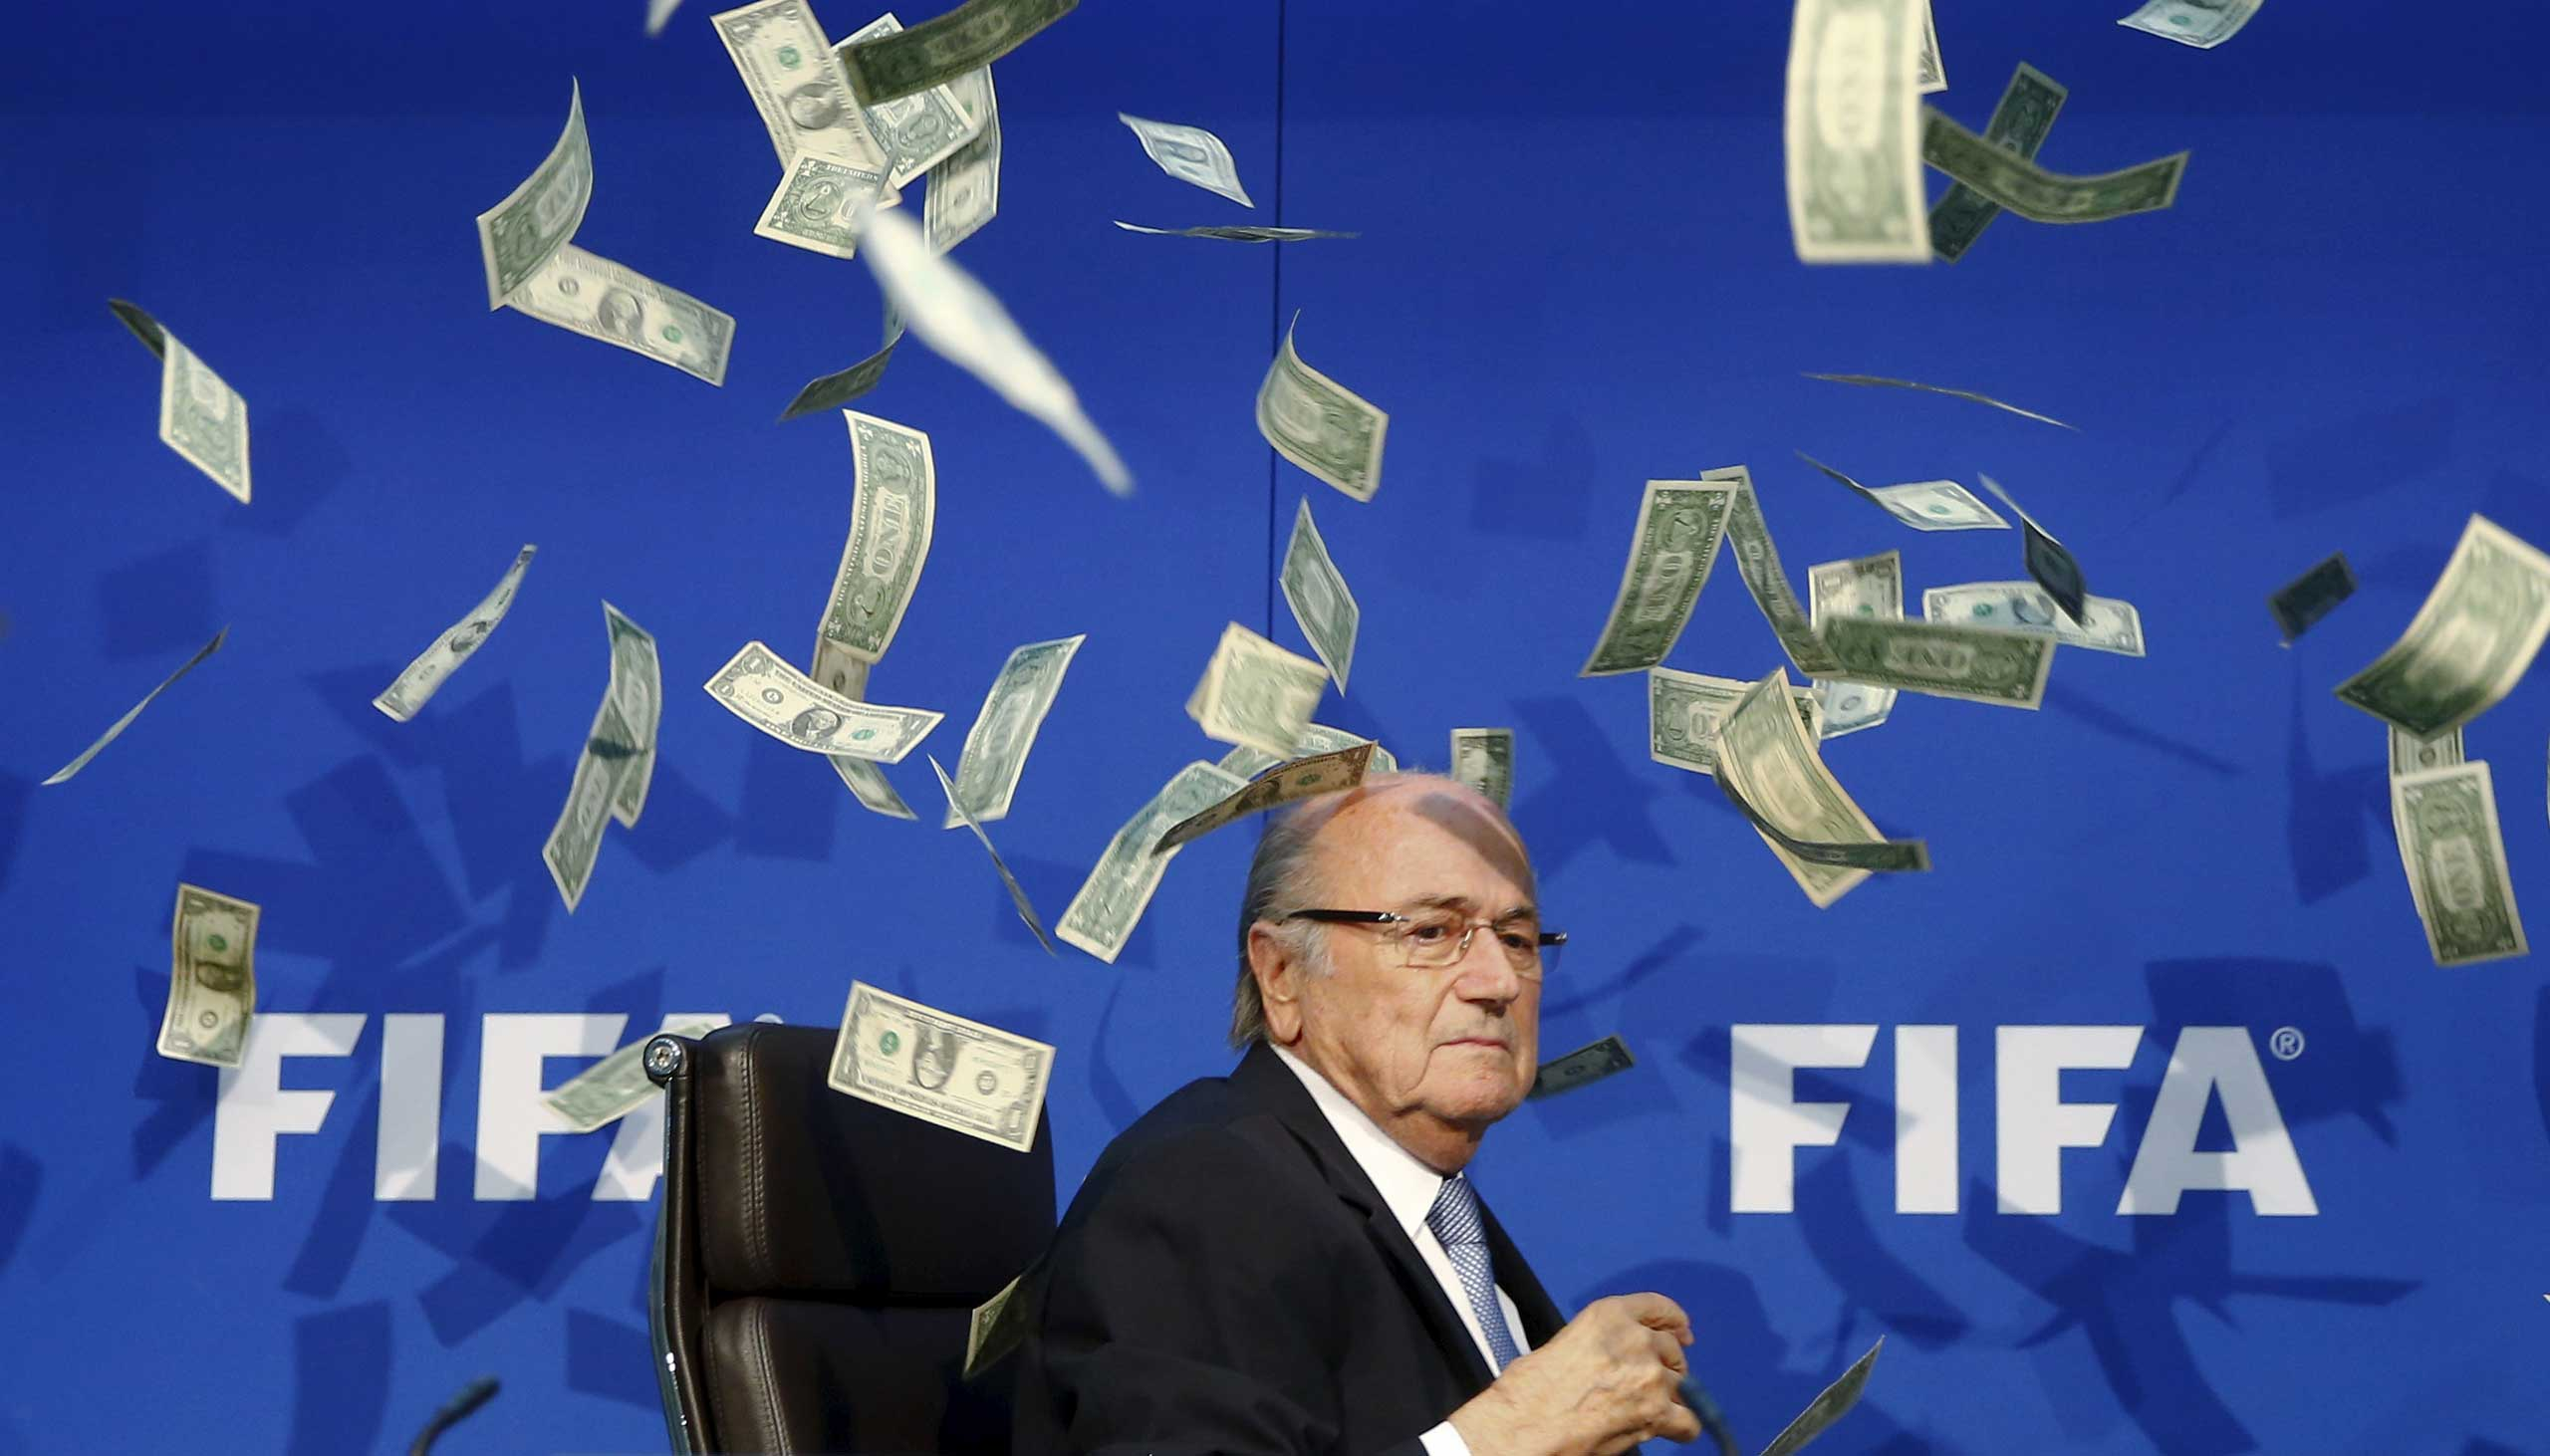 British comedian known as Lee Nelson (unseen) throws banknotes at FIFA President Sepp Blatter as he arrives for a news conference after the Extraordinary FIFA Executive Committee Meeting at the FIFA headquarters in Zurich, Switzerland, July 20, 2015.